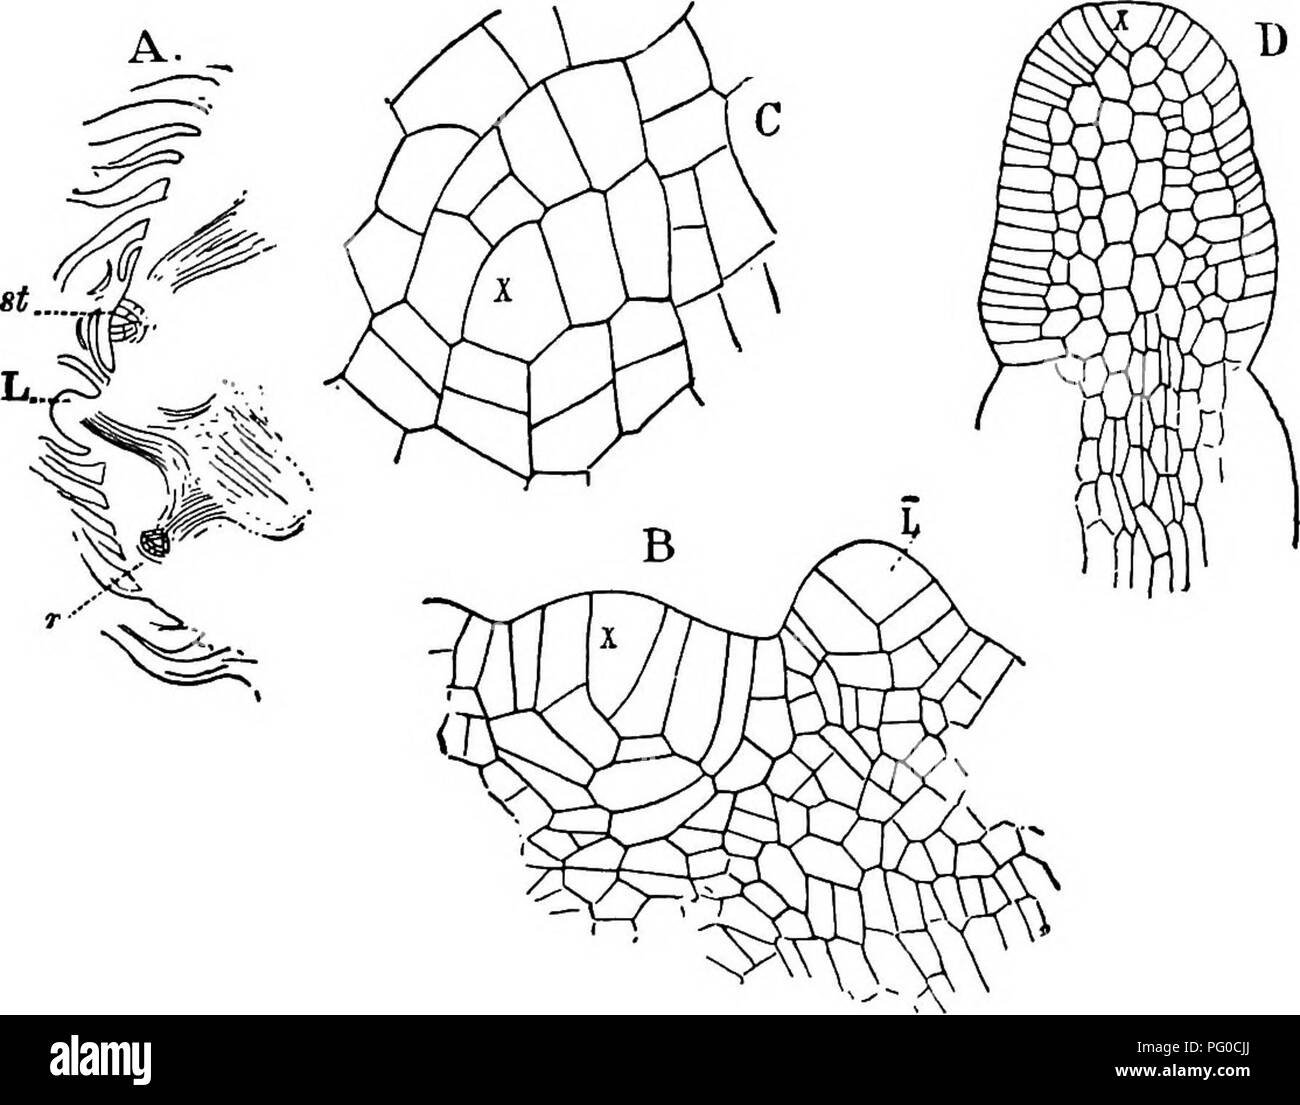 the structure and development of mosses and ferns archegoniatae Fern Sori Diagram plant morphology mosses ferns 328 mosses and ferns plant exceeds the leaves in a plant with the fourth leaf still unfolded